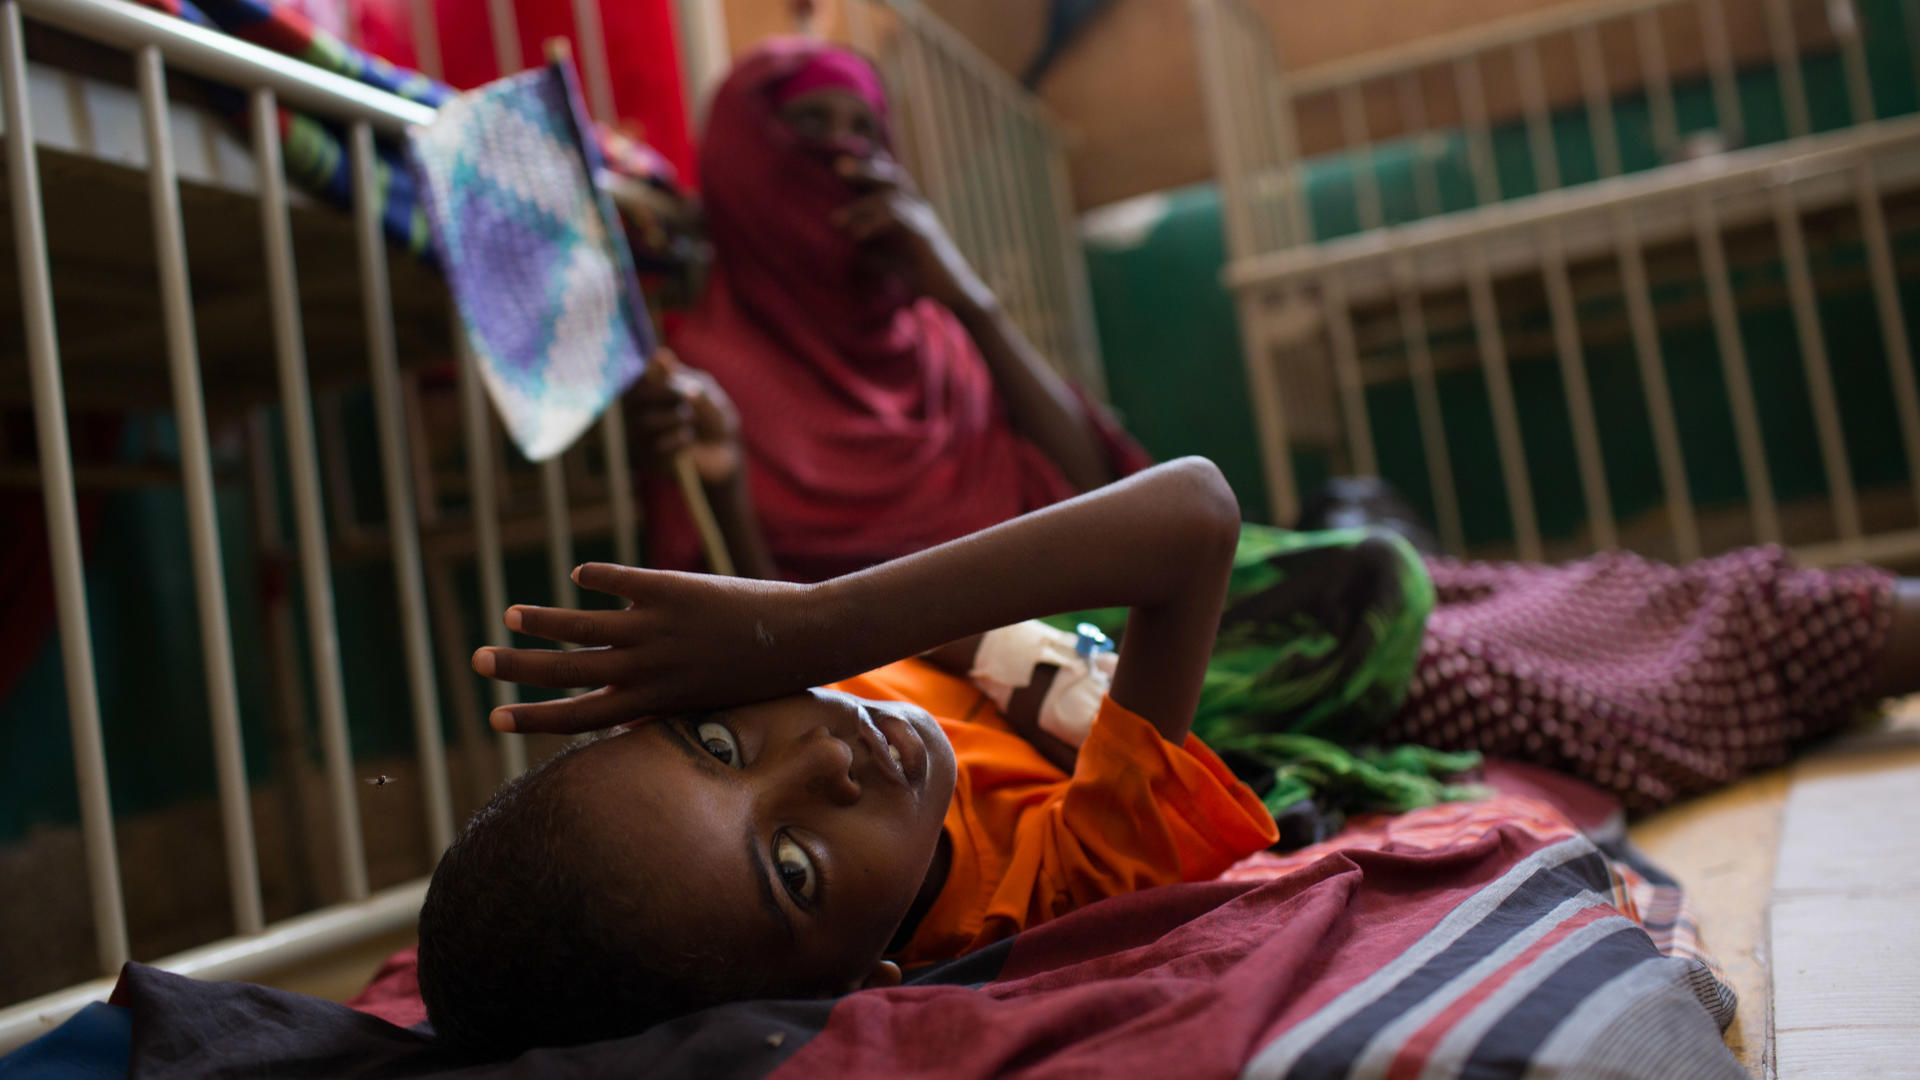 A young boy with severe acute malnutrition receives treatment at the Banadir District Hospital in Mogadishu, Somalia.